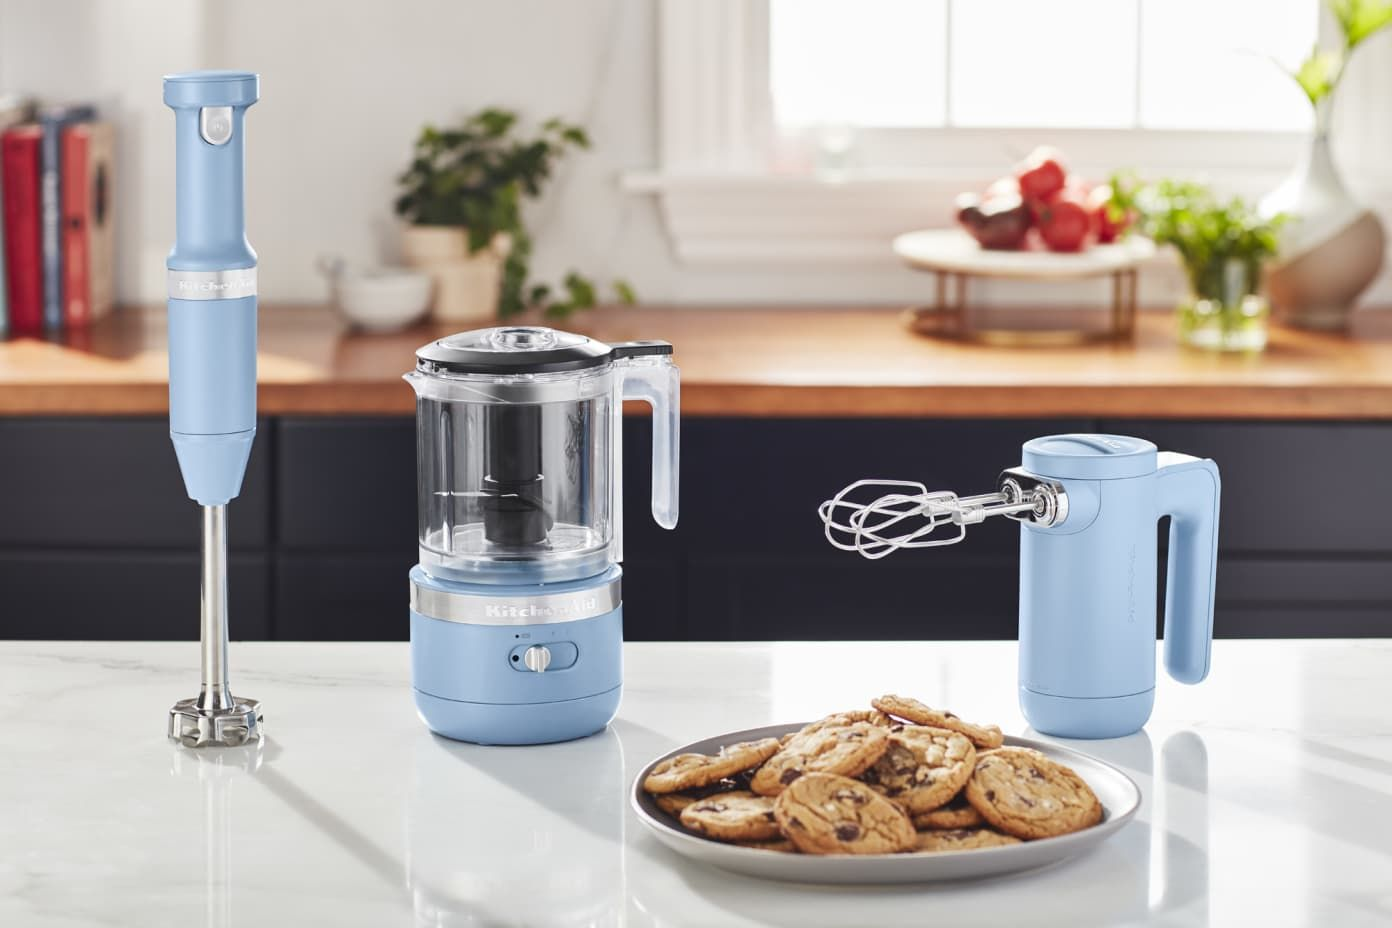 Kitchenaid just launched a line of cordless countertop